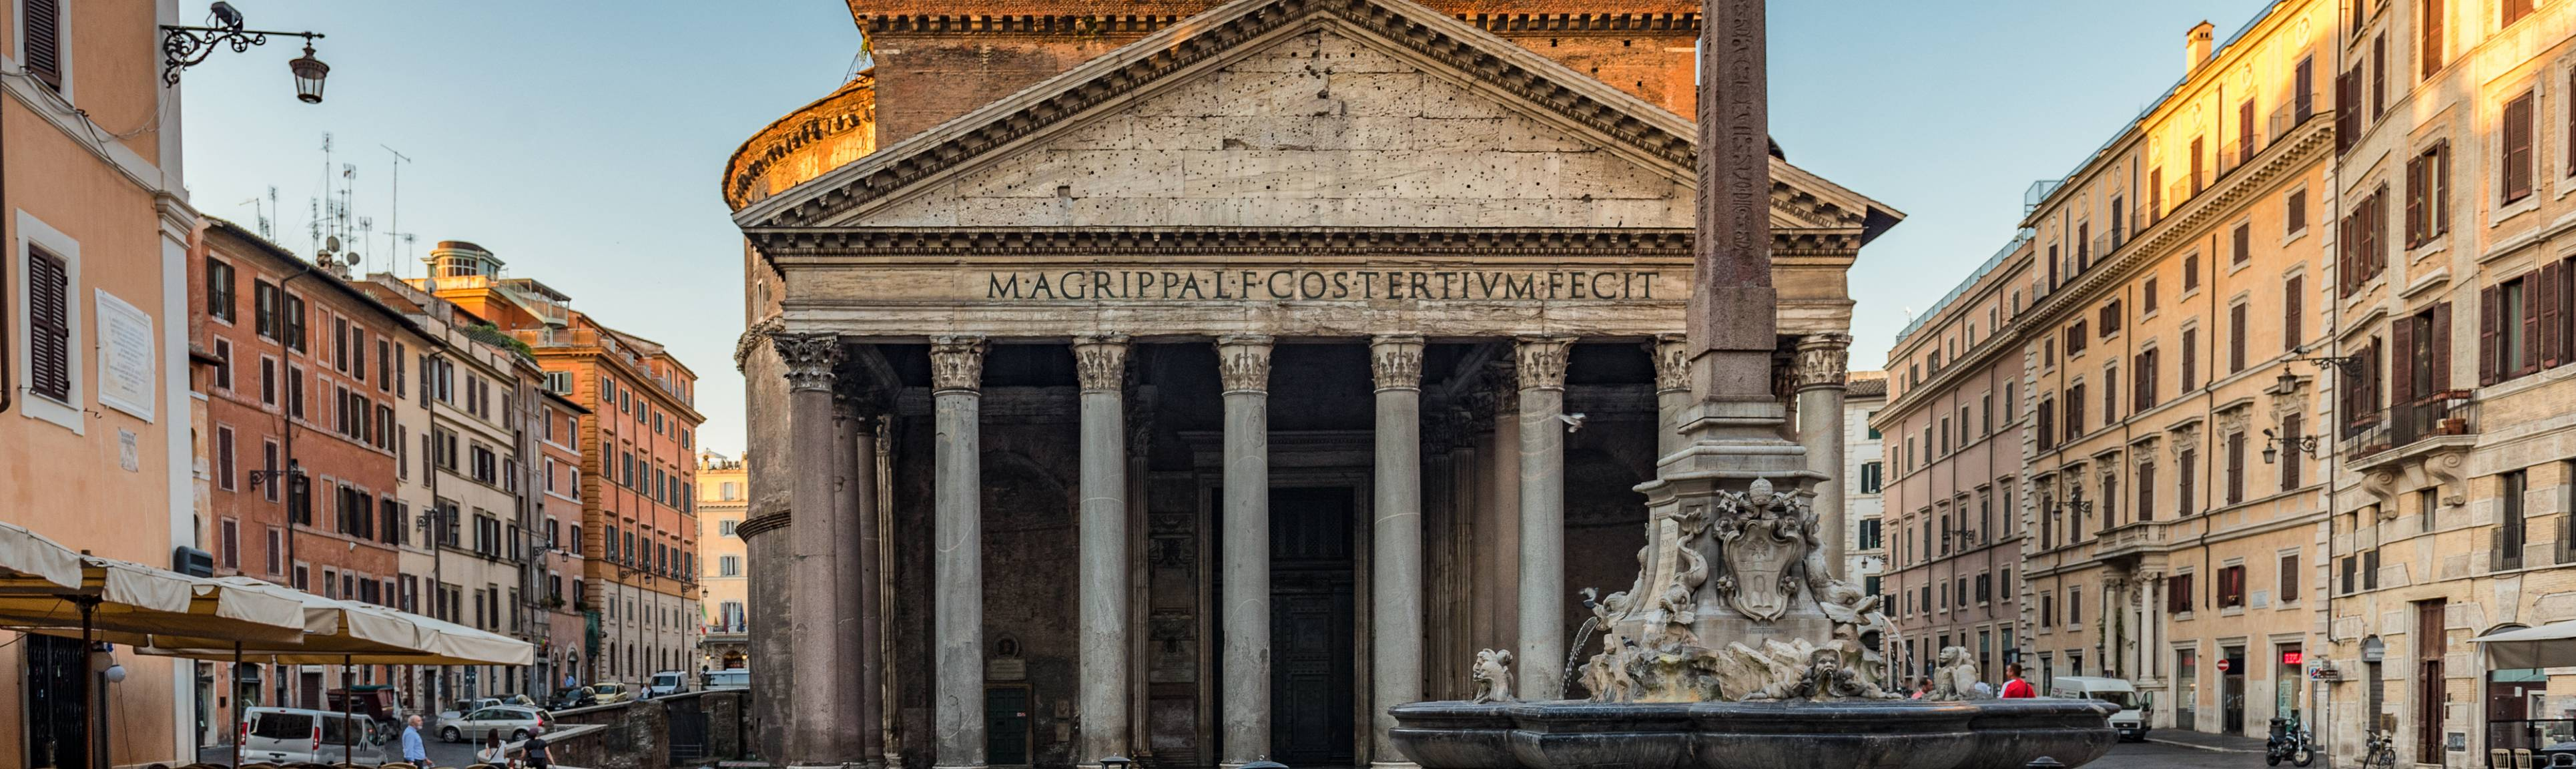 View of front facade of Pantheon in Rome, Italy